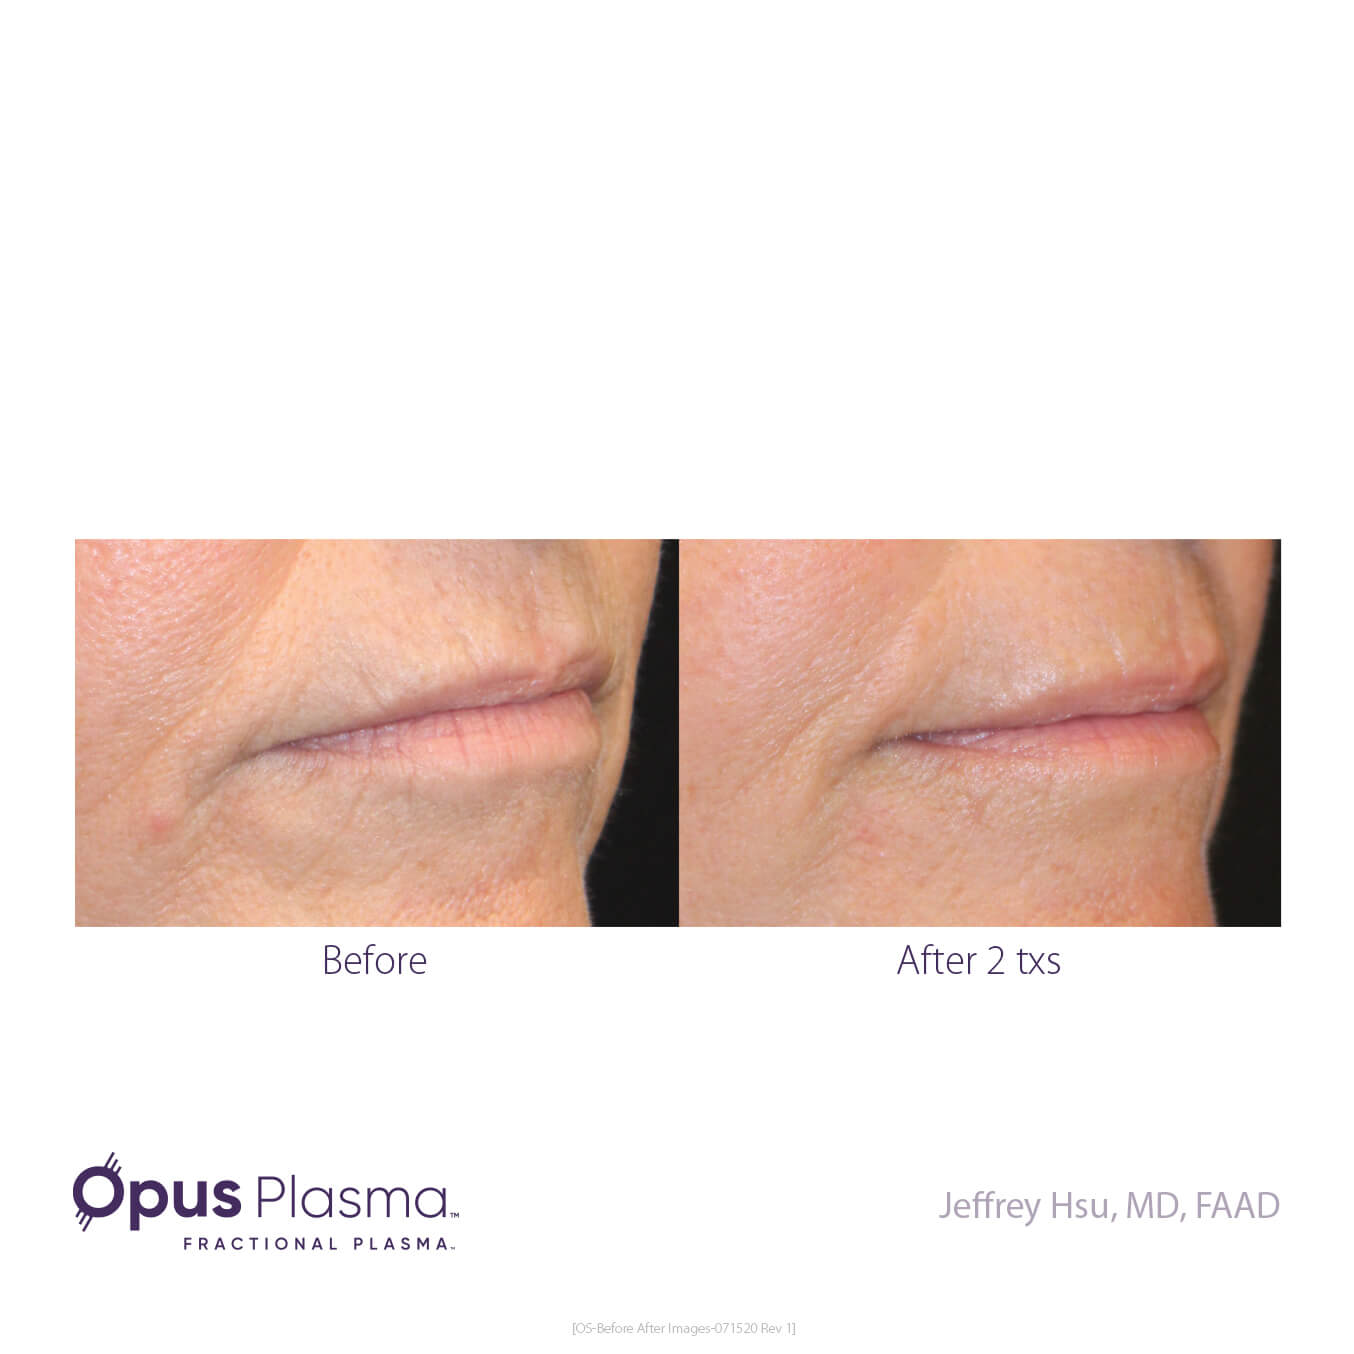 Opus-Before_and_After-B2C-9